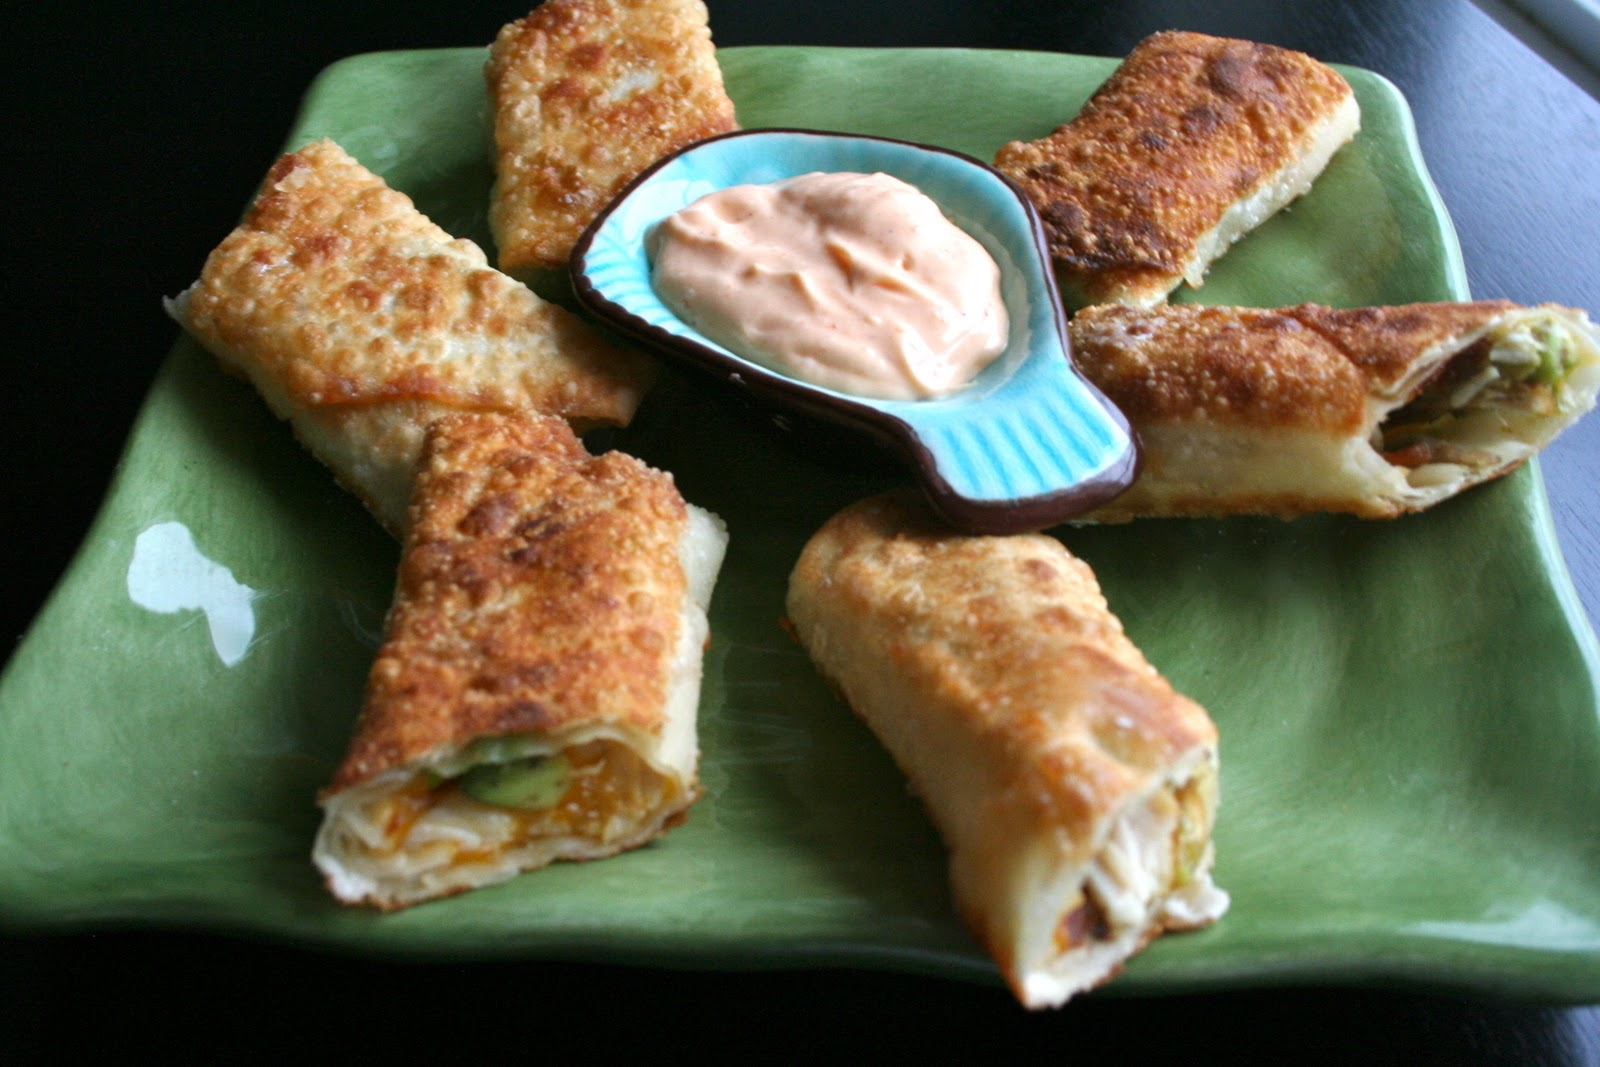 Mama Grubbs Grub: California Pizza Kitchen Avocado Club Egg Rolls